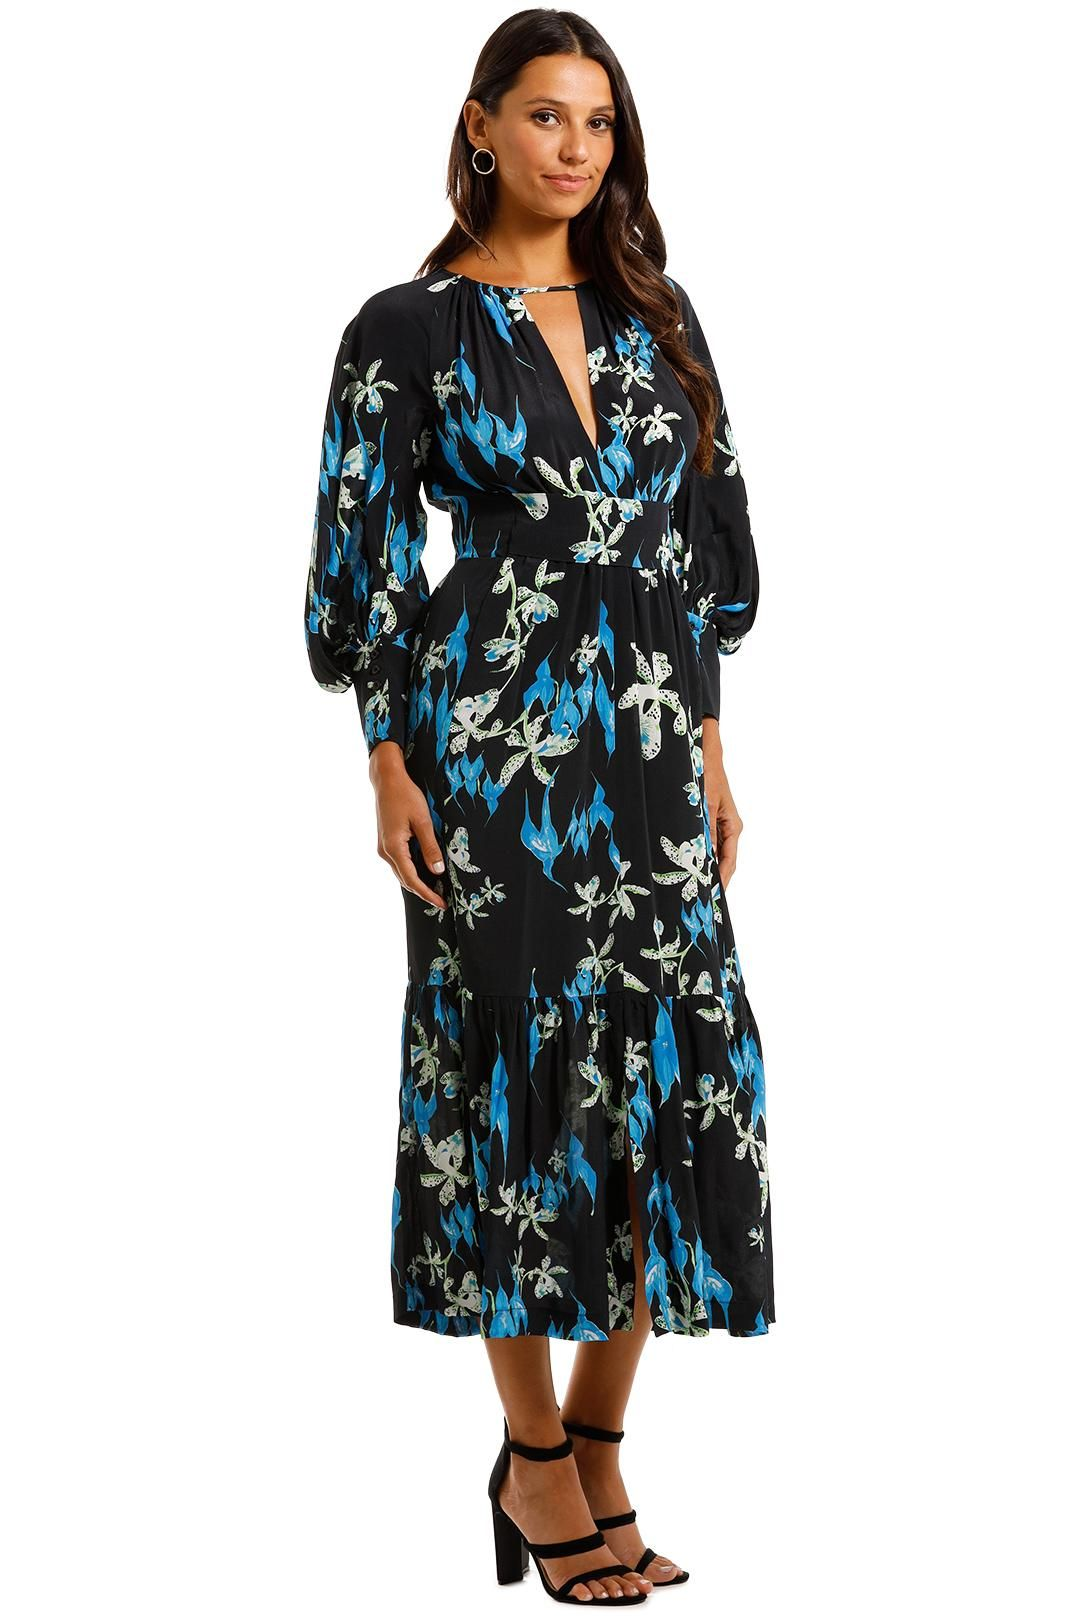 KITX Restoration Blue Midi Dress Floral Print